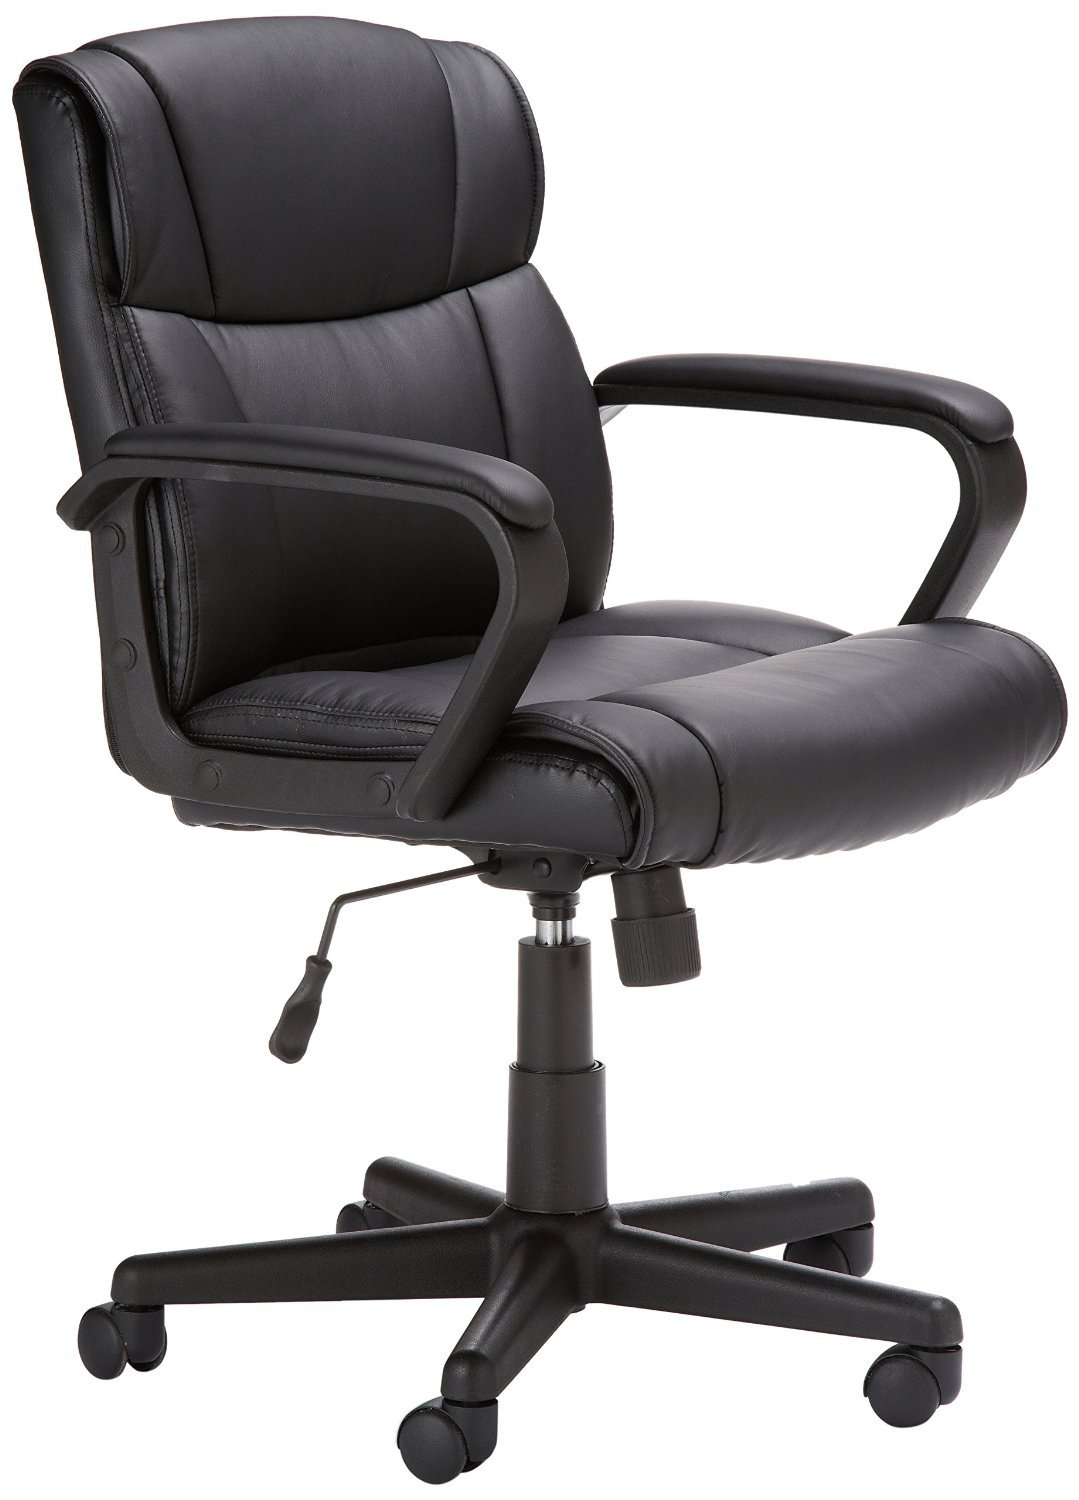 Black and white office chair - Black And White Office Chair 12